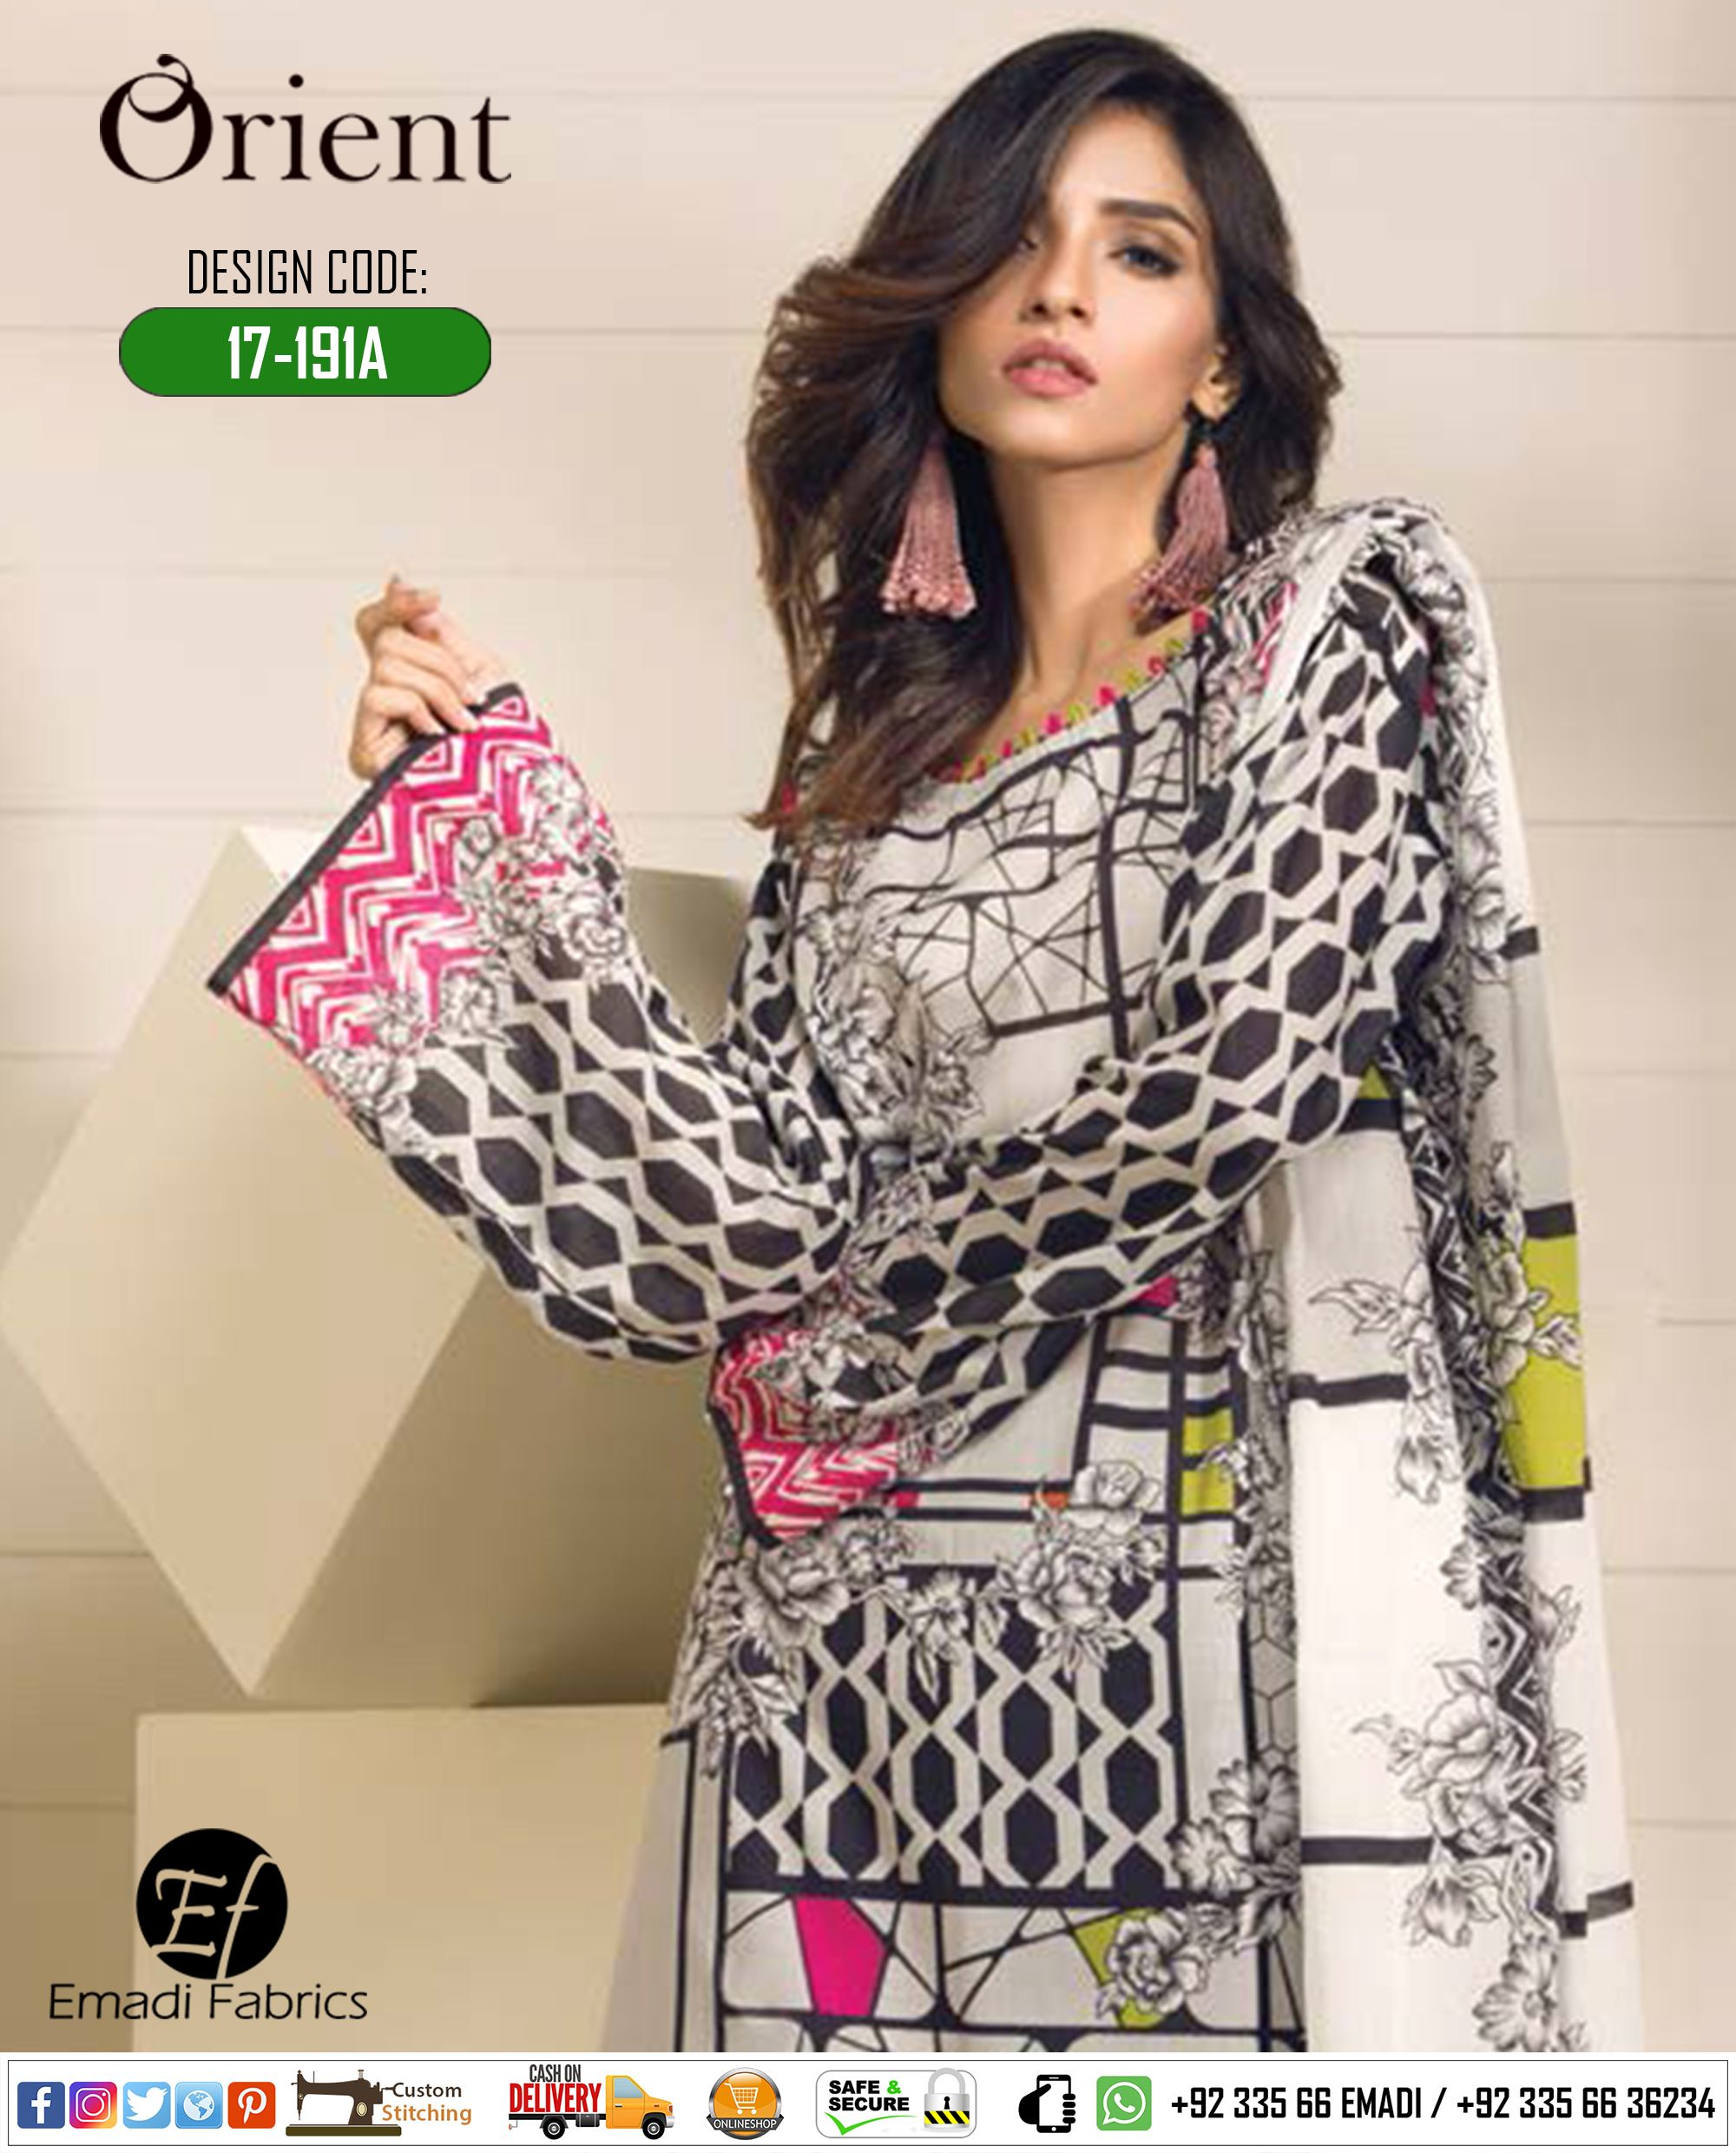 902acffe5bb ORIENT - SAWAN PREMIUM EMBROIDERED COLLECTION 2017. Design Code: 17-191A  Price Rs